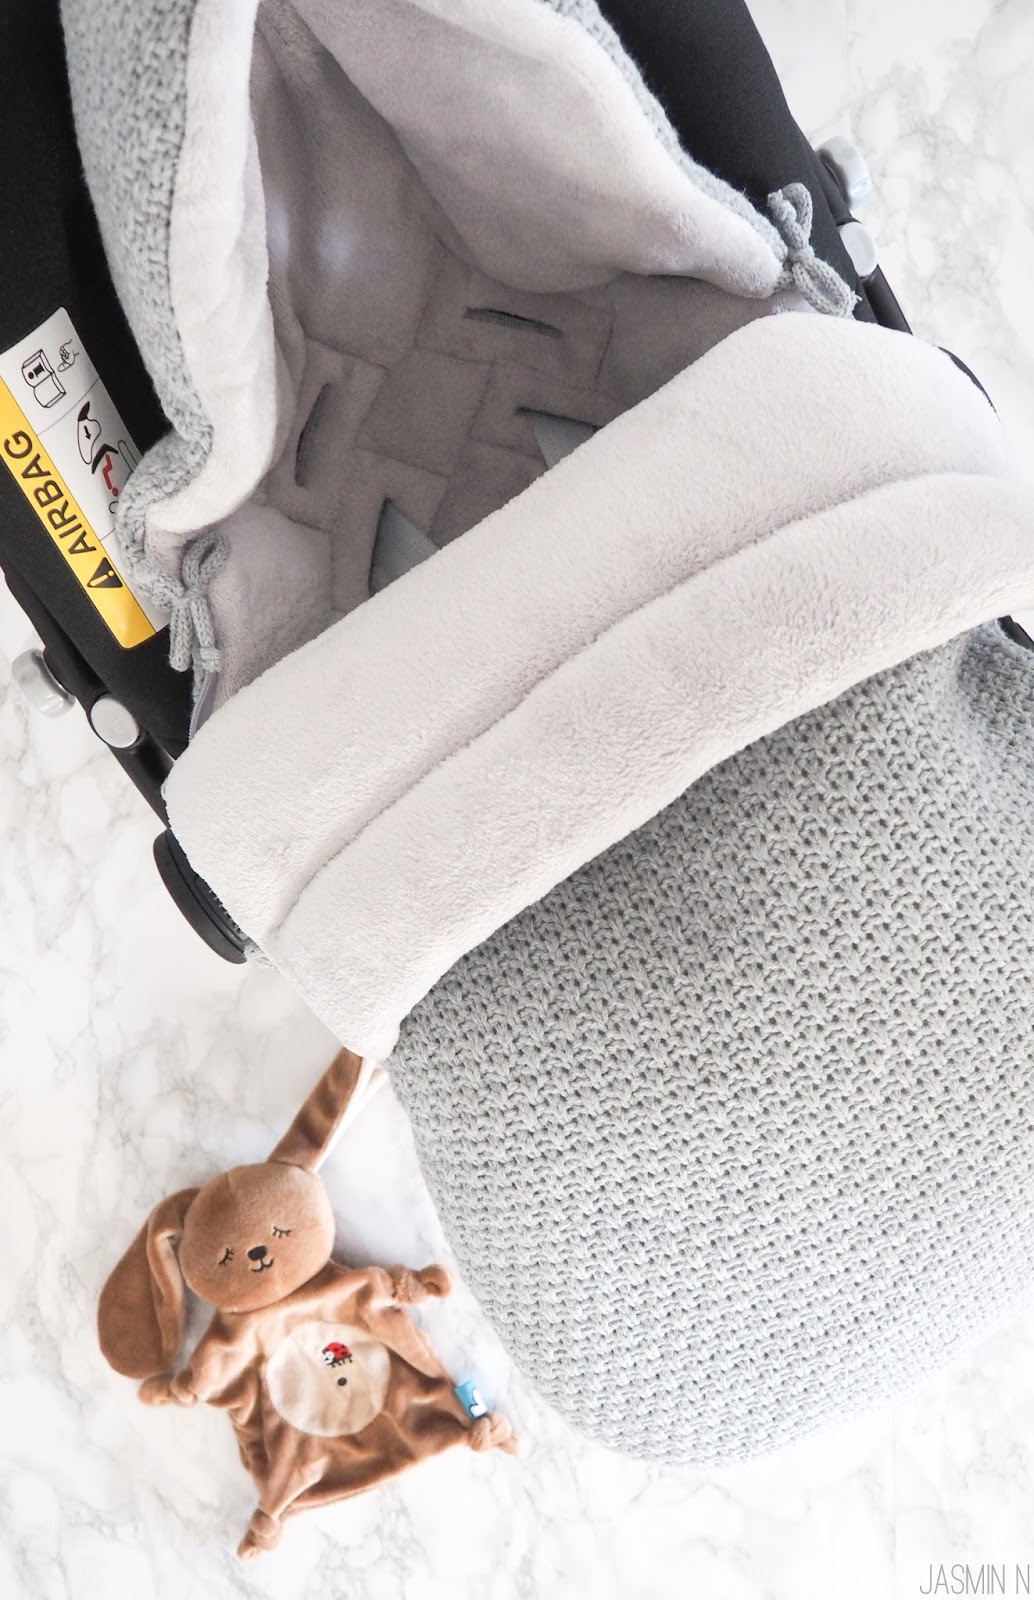 WARM BAG FOR THE SAFETY SEAT |BABY'S ONLY